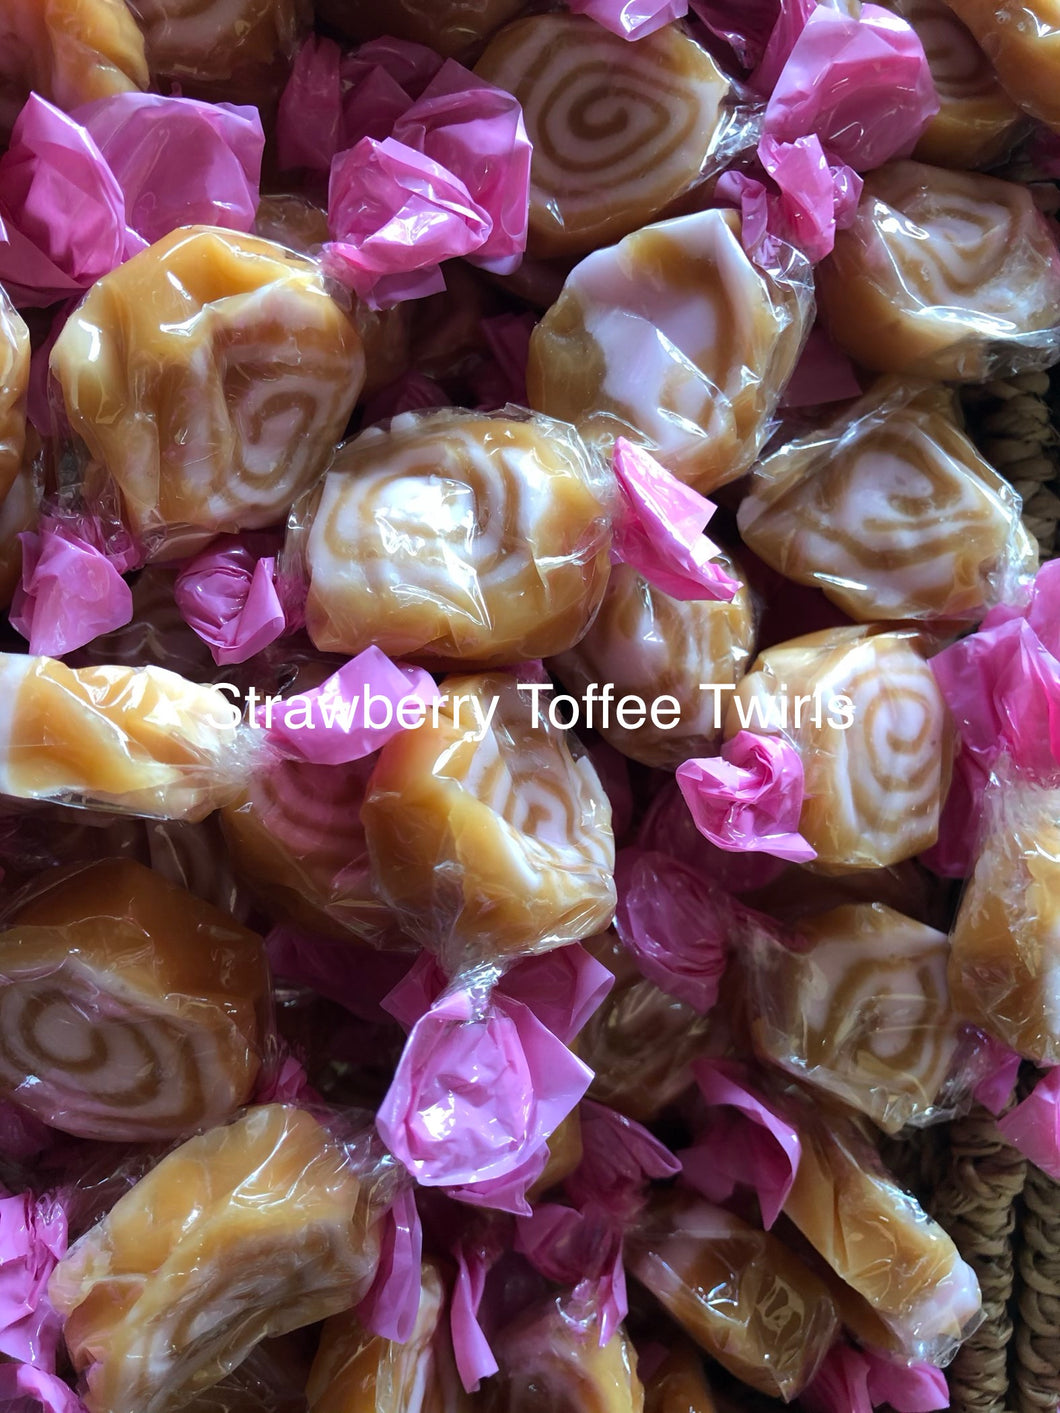 Strawberry Toffee Twirls